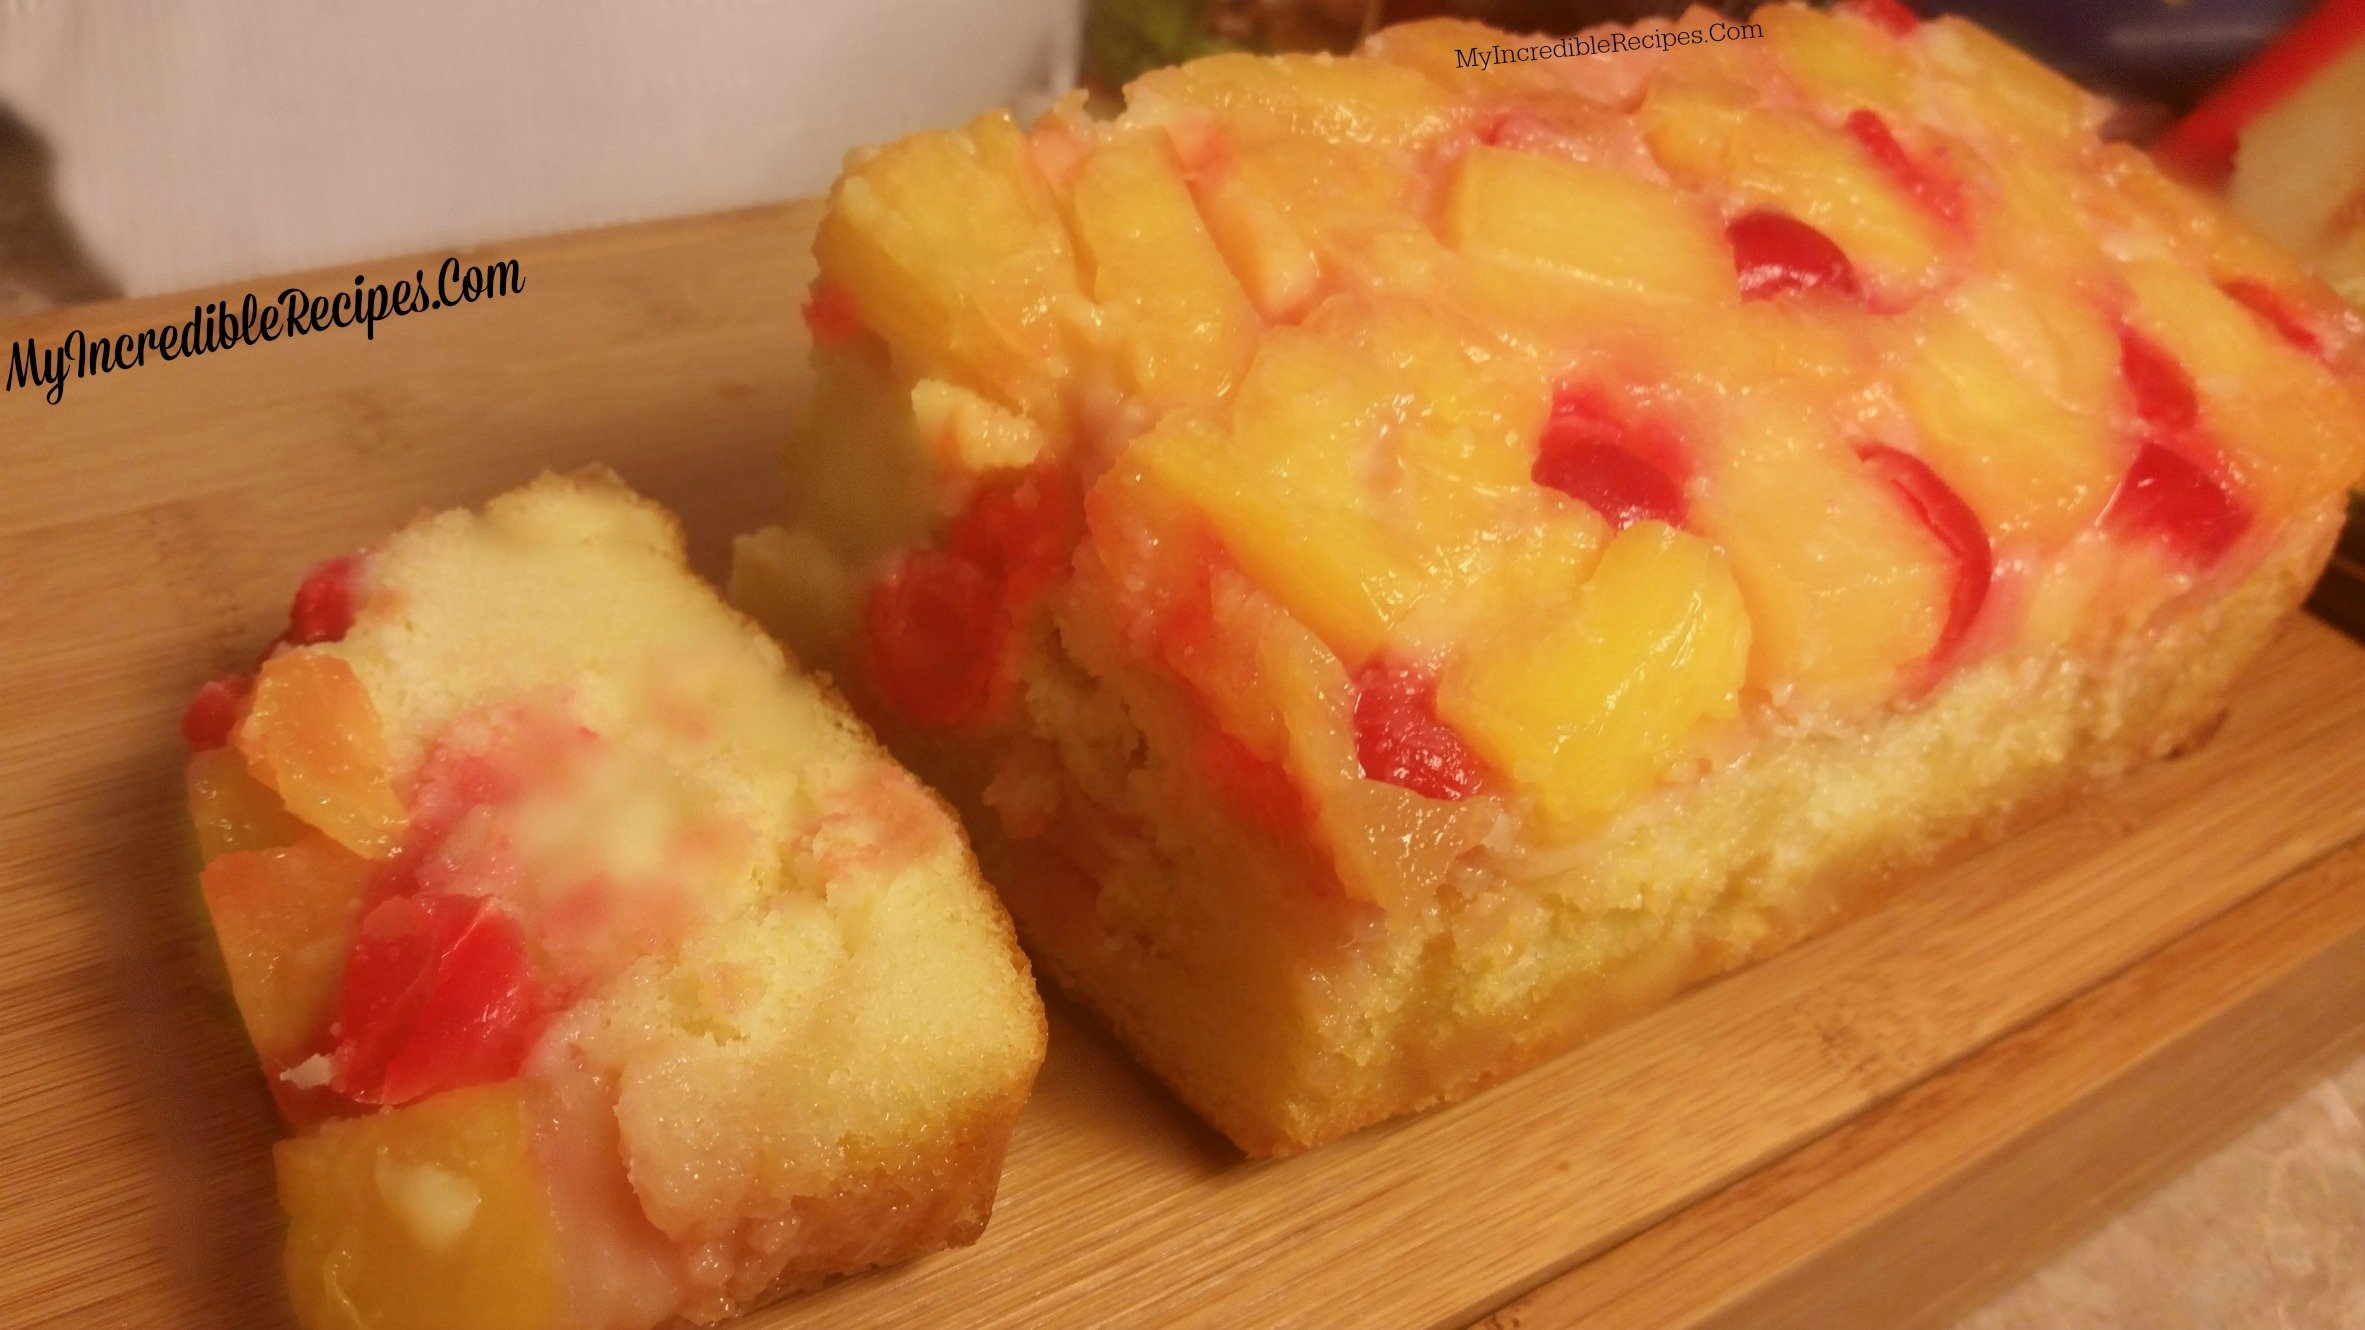 Pineapple upside down bread pudding recipes